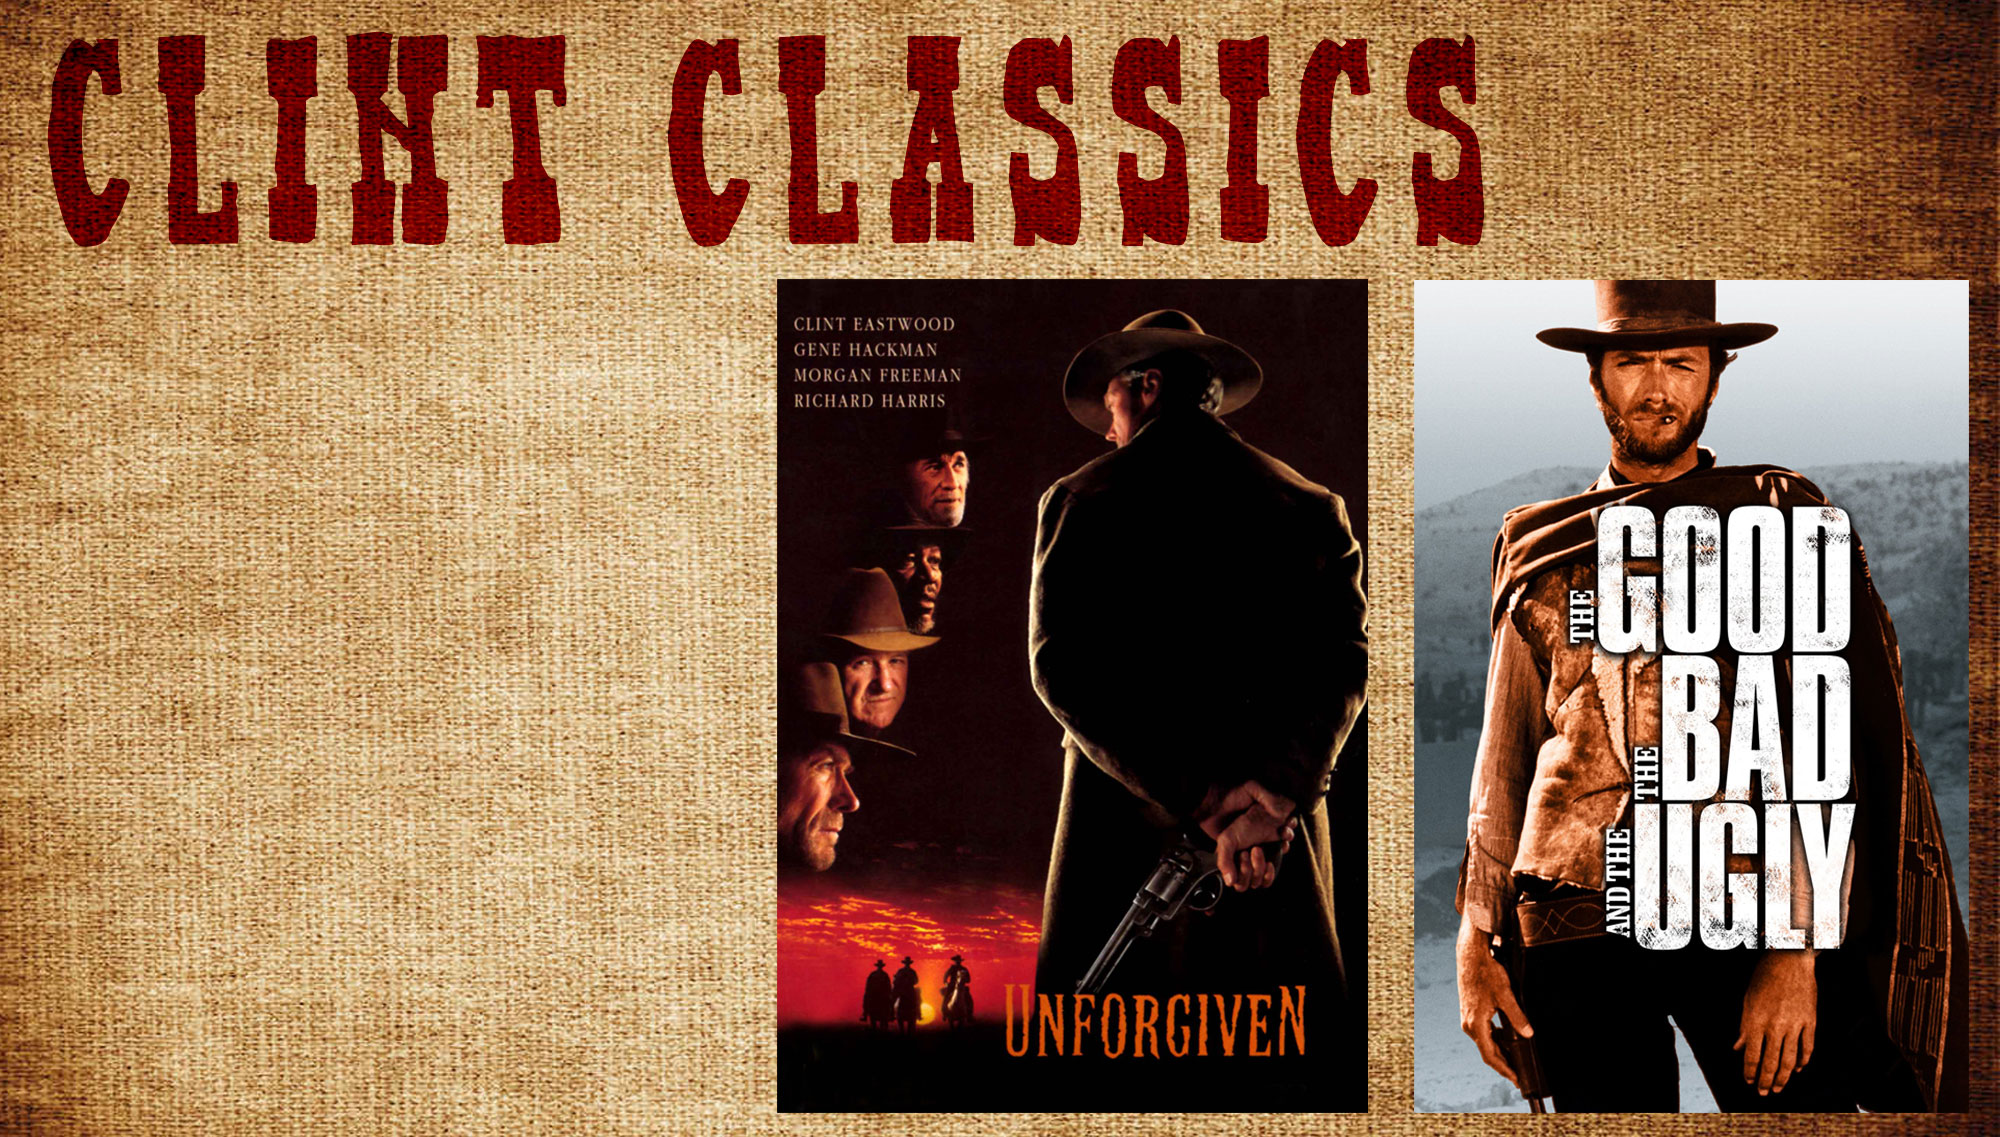 CLINT CLASSICS   <h5>The Good, The Bad, And The Ugly & Unforgiven  </h5><h5>December 29 & 30  </h5>